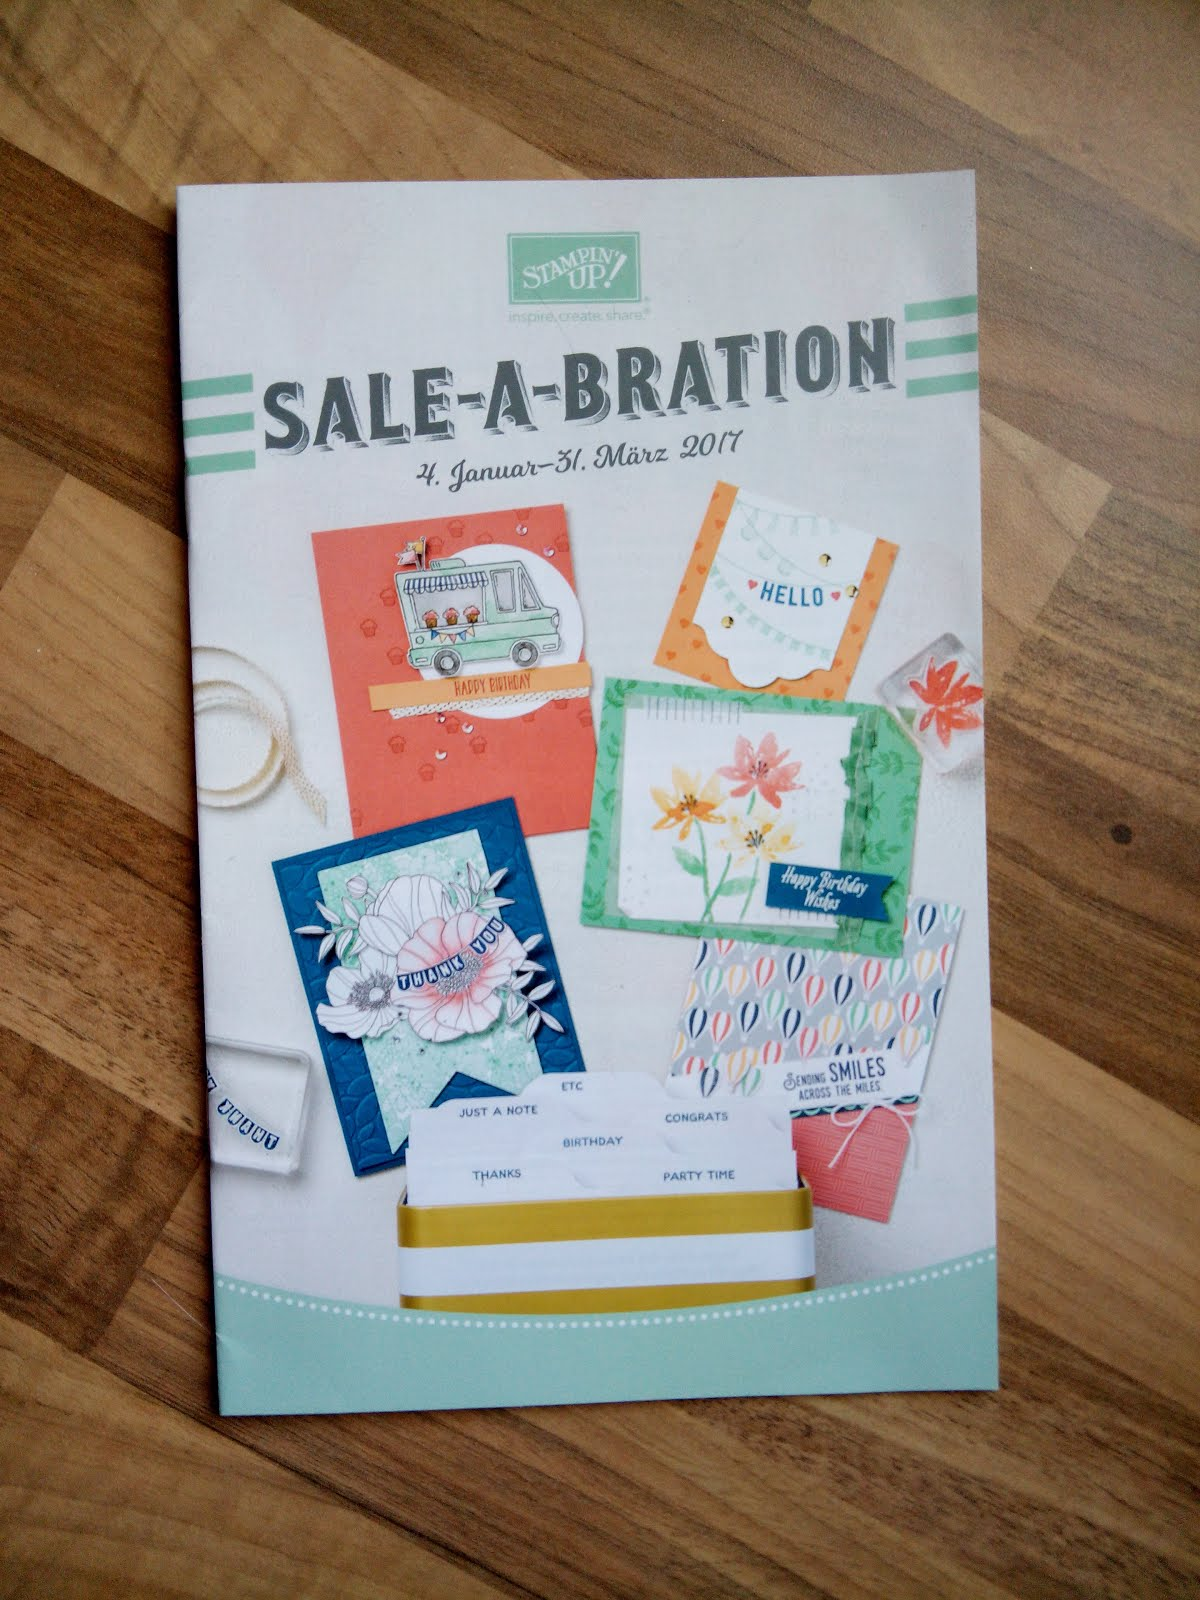 - Sale-a-bration -